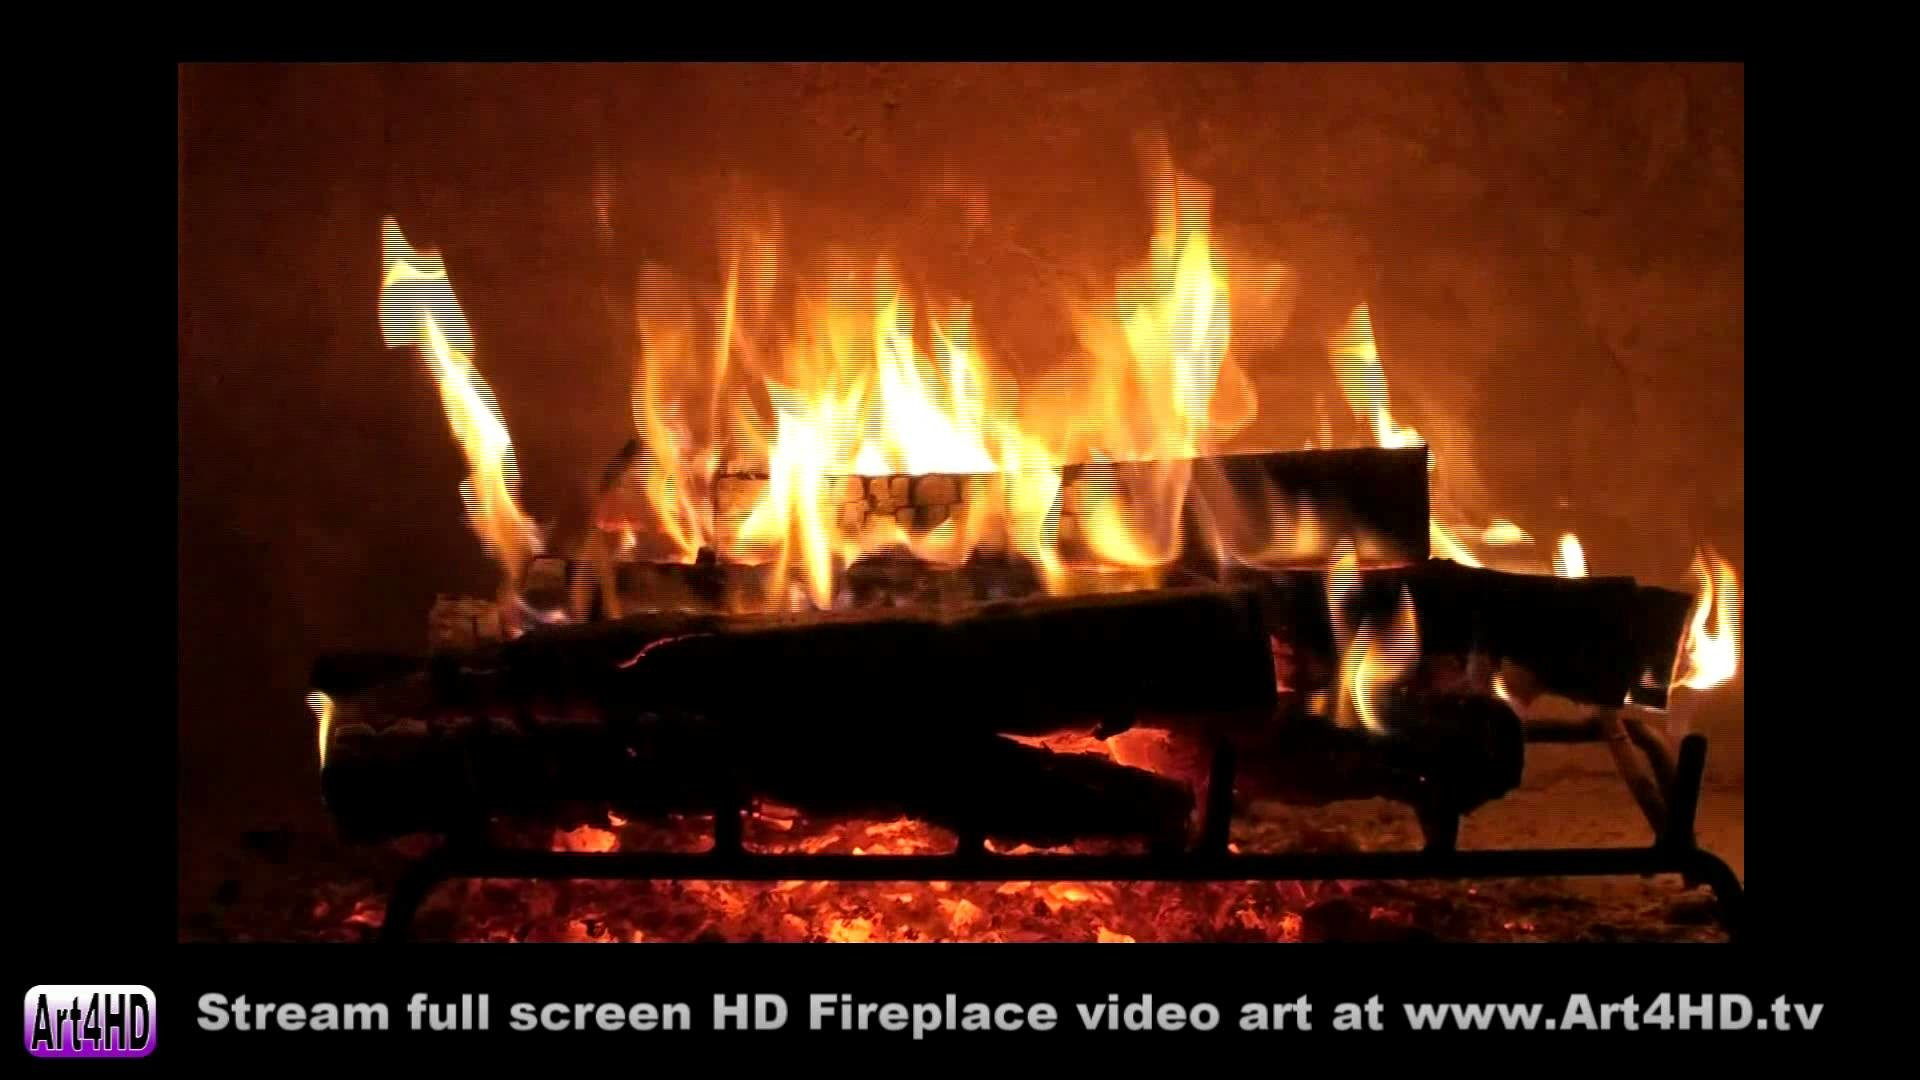 Res: 1920x1080, 1000+ ideas about Fireplace Screensaver on Pinterest | Christmas